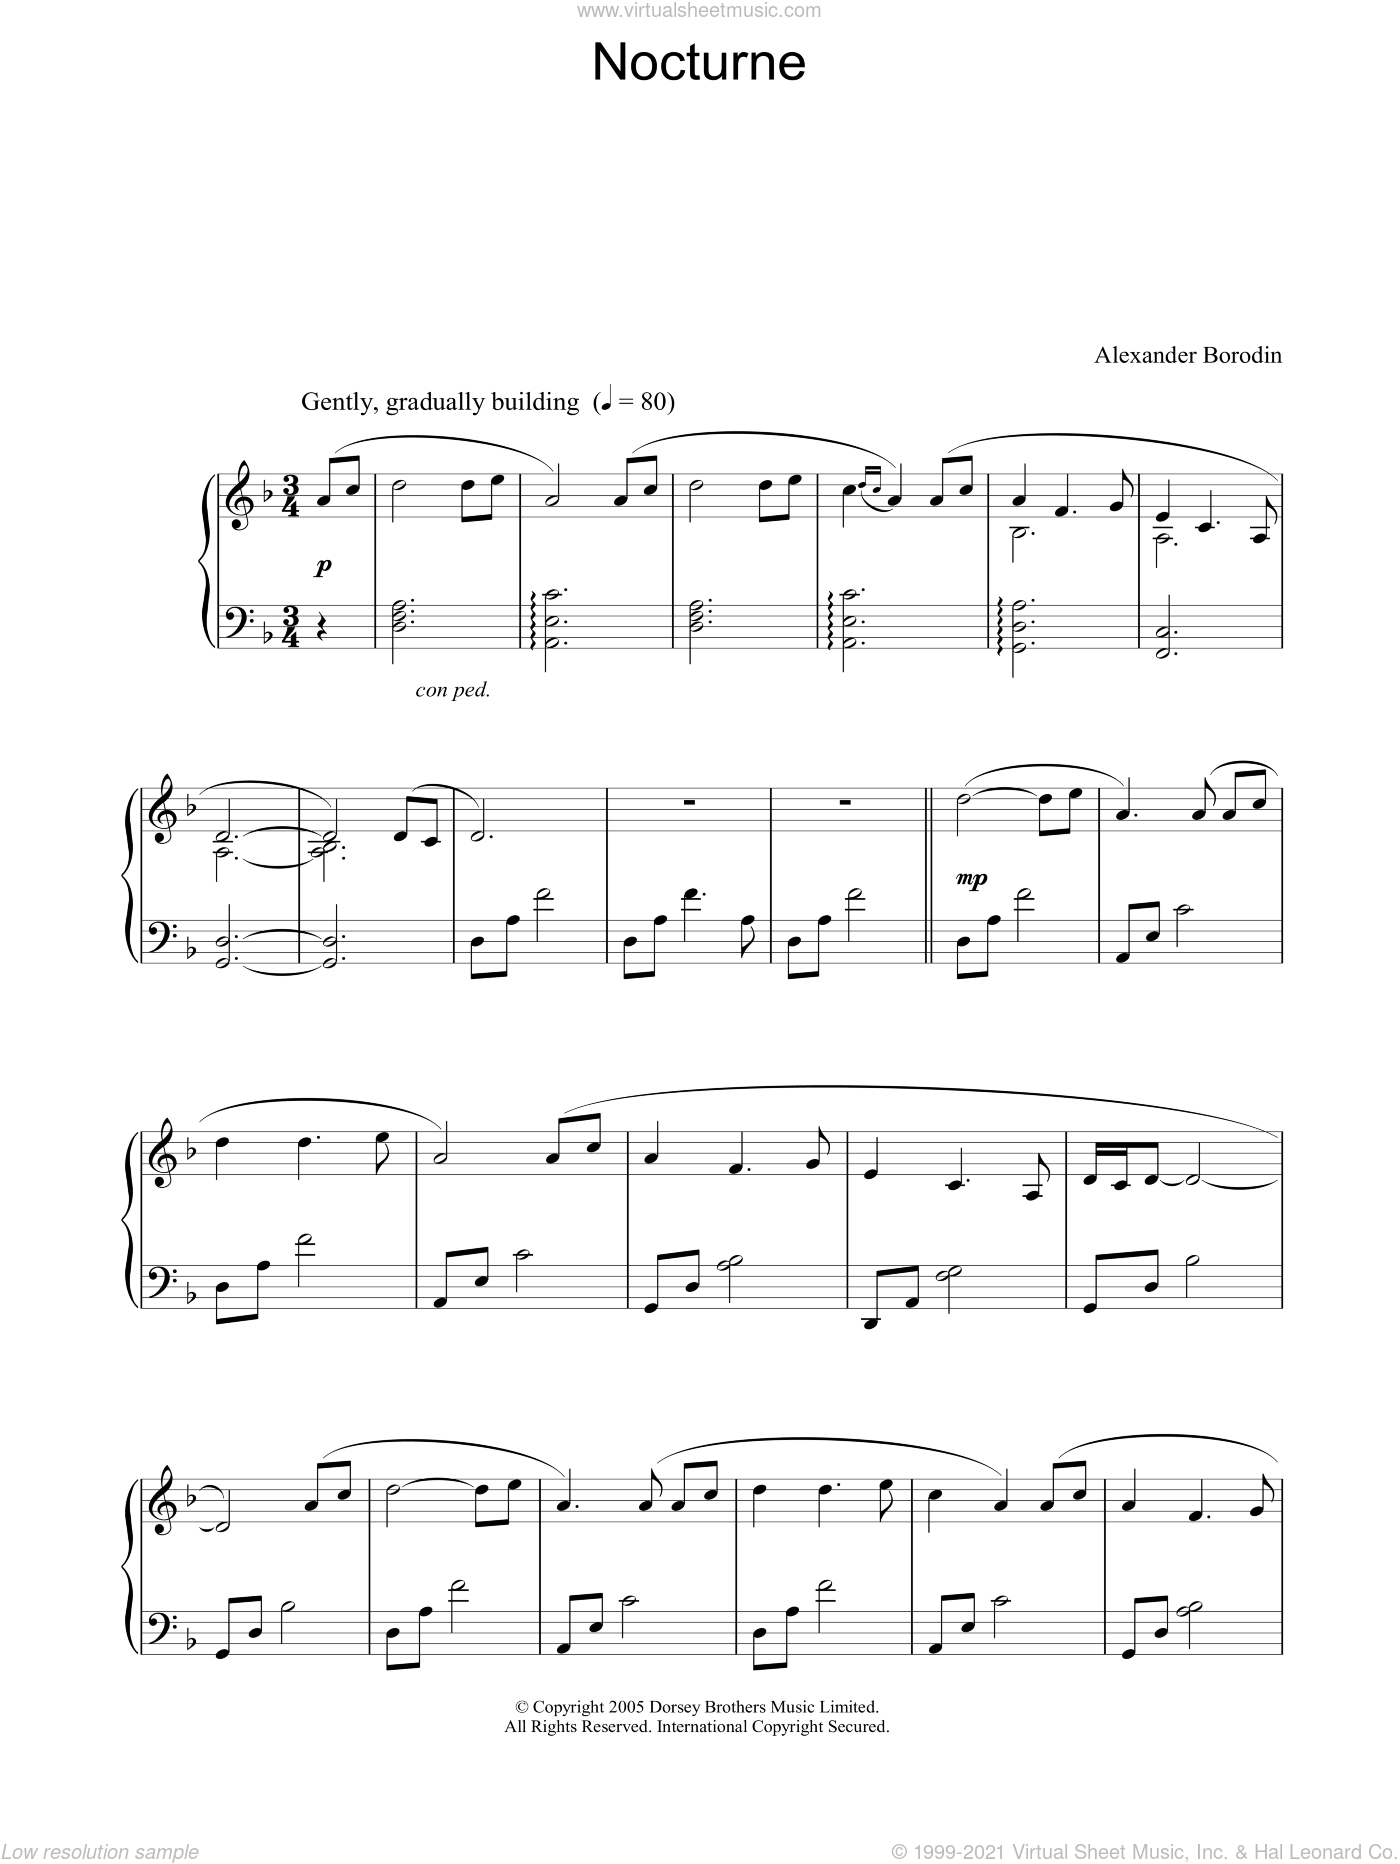 Nocturne sheet music for piano solo by Alexander Borodin